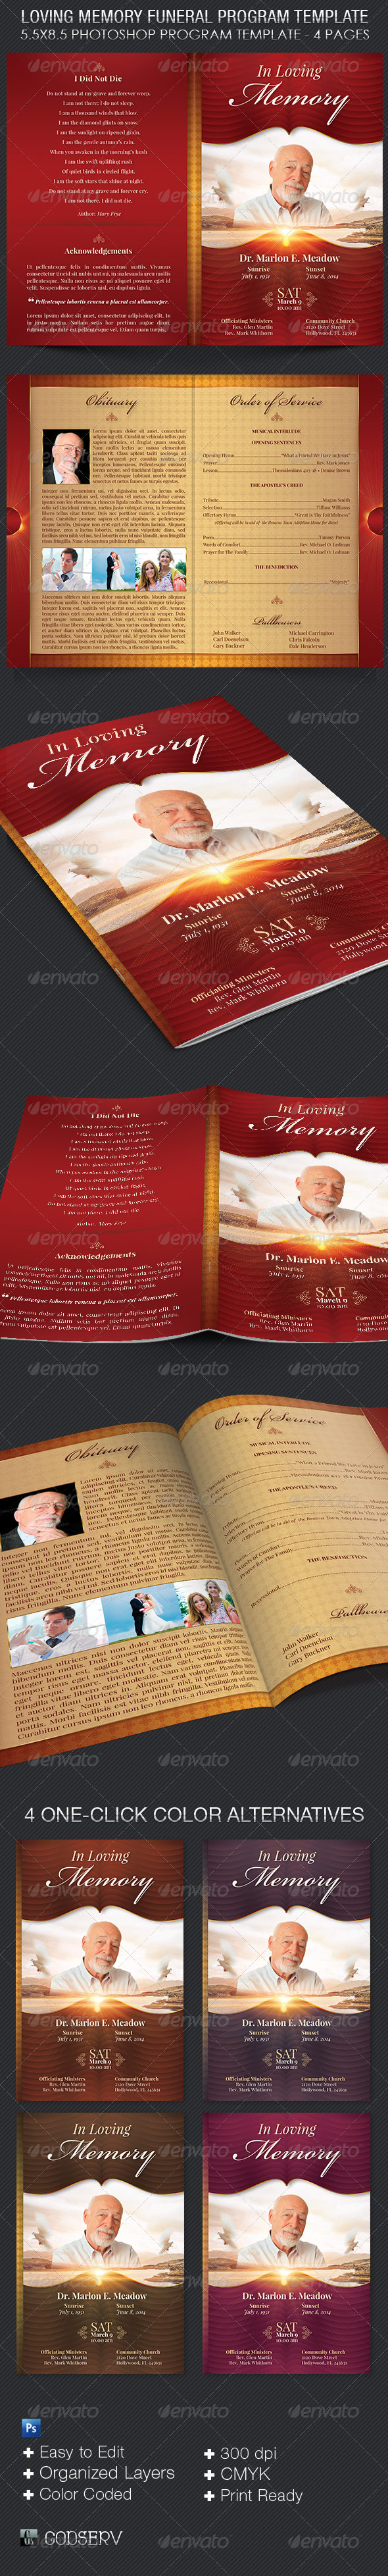 GraphicRiver Loving Memory Funeral Program Template 8005090